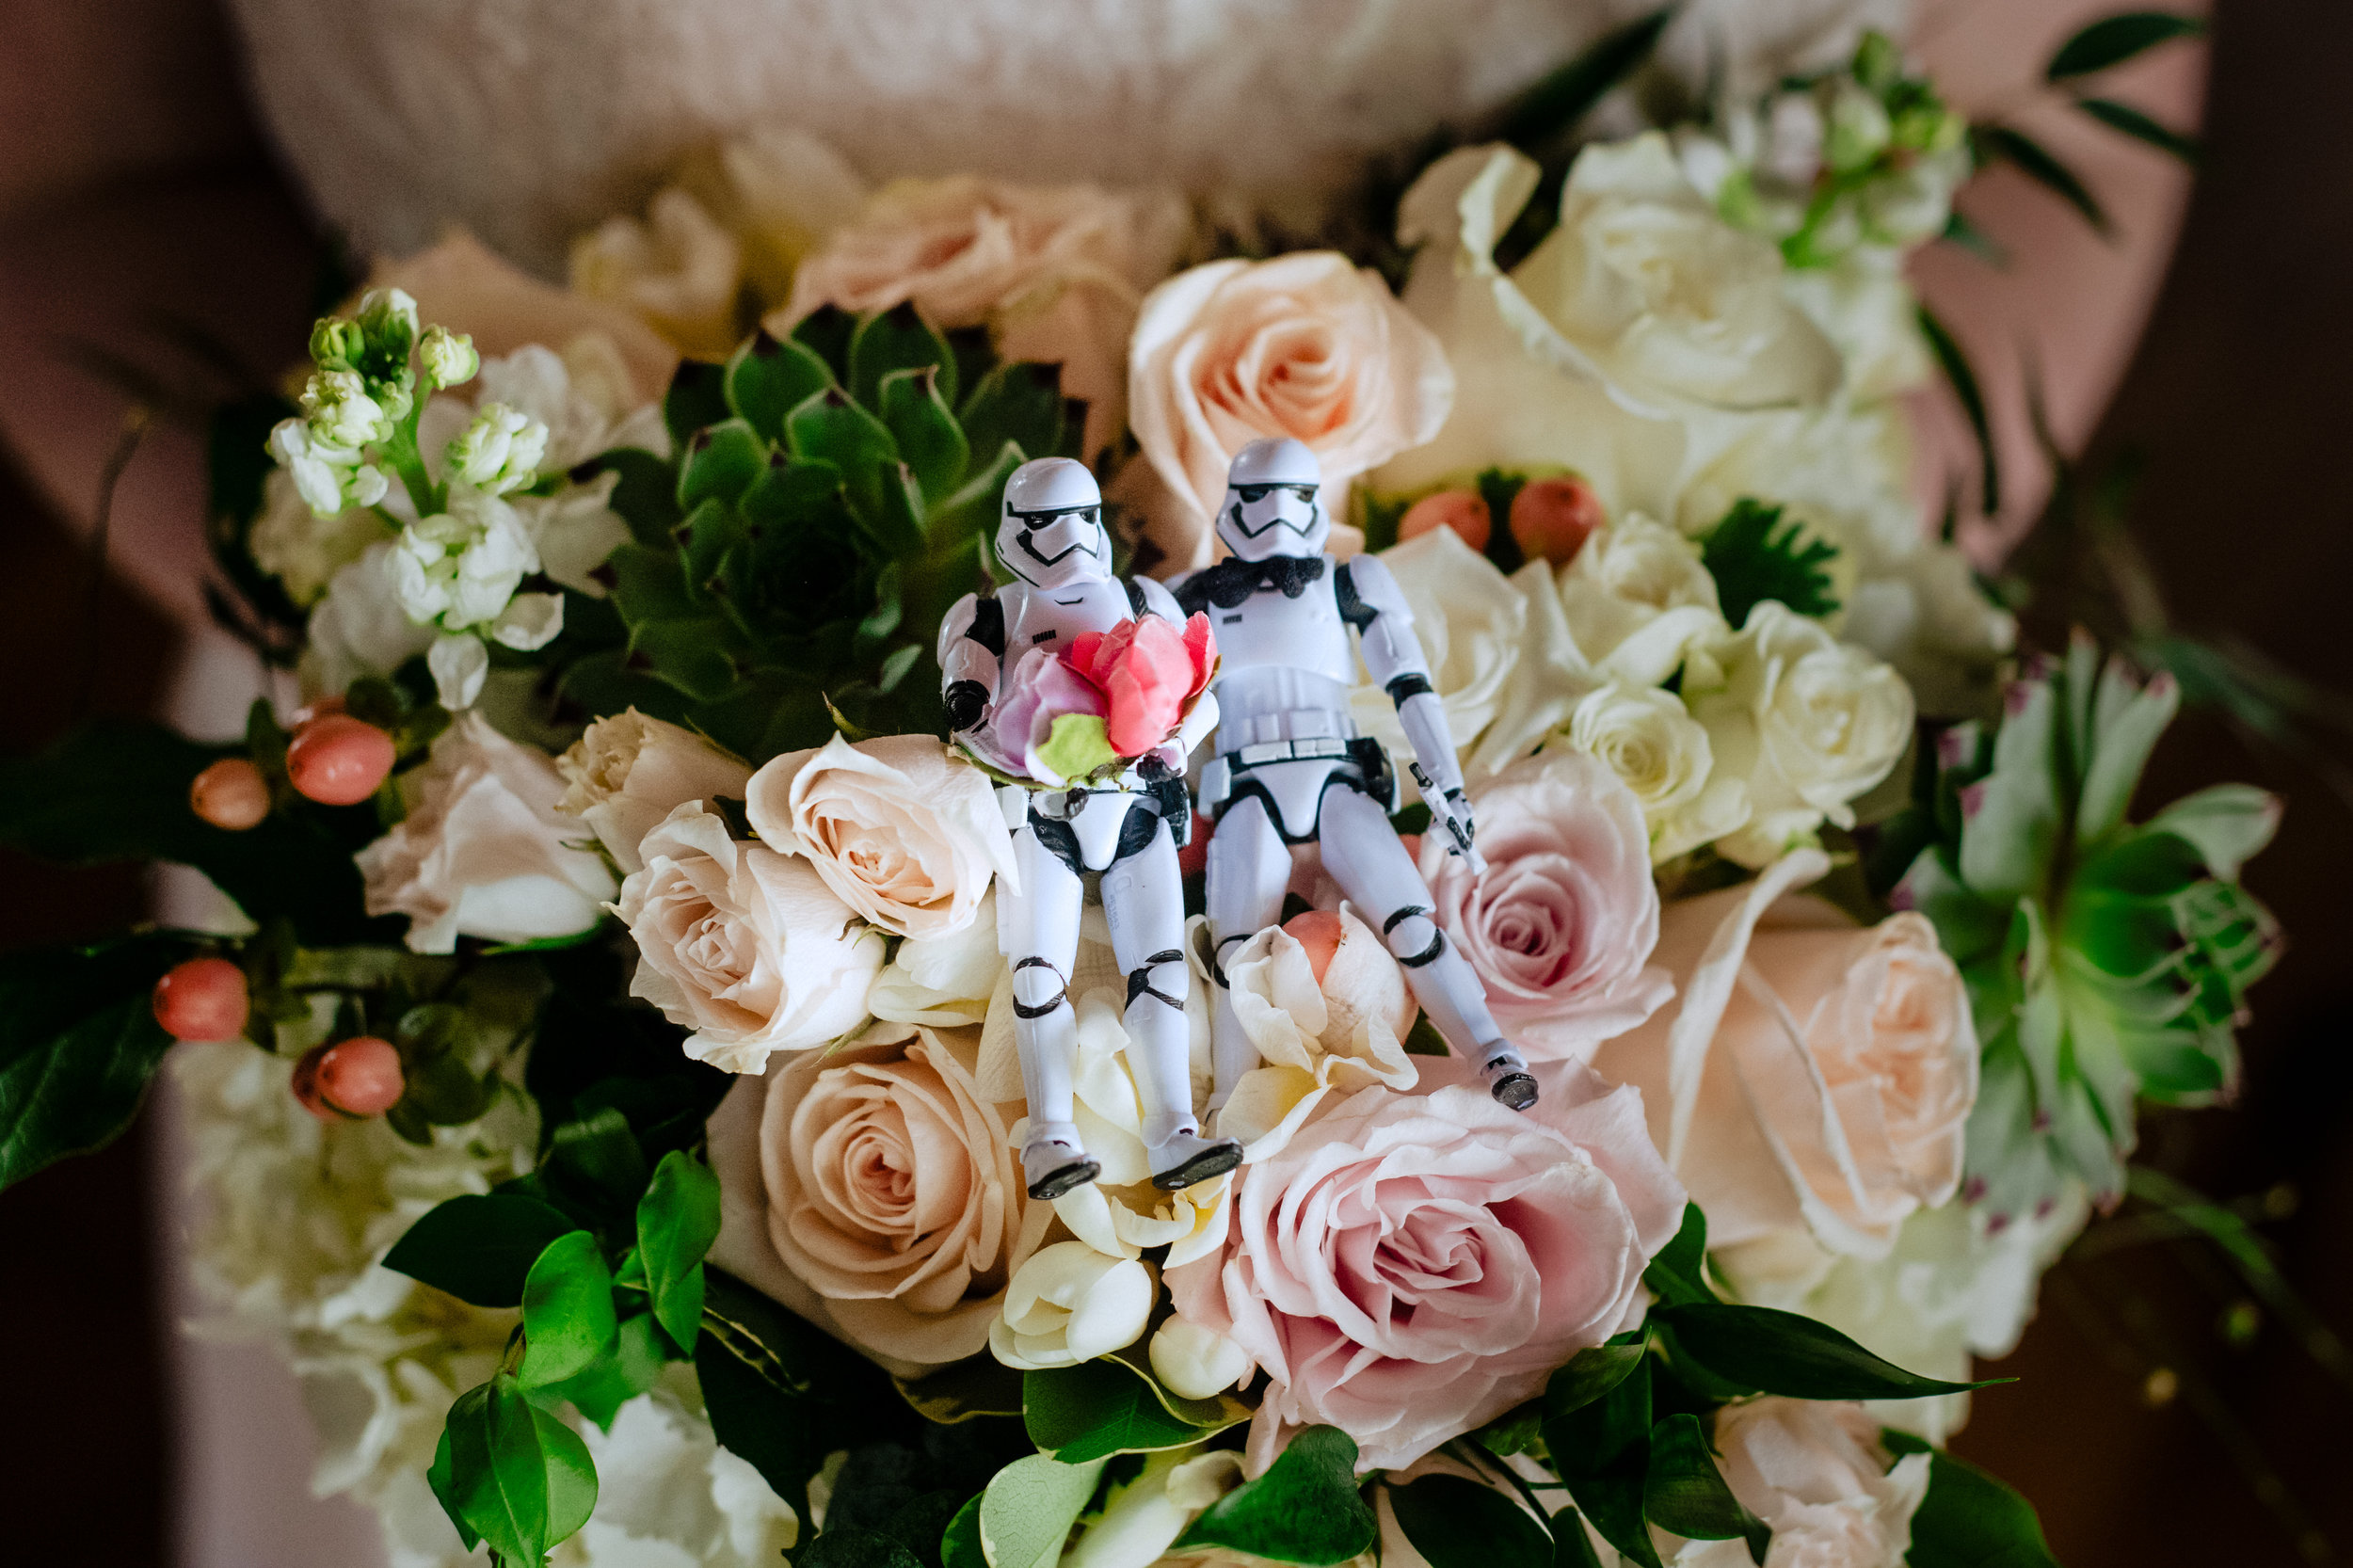 star-wars-wedding-details.jpg